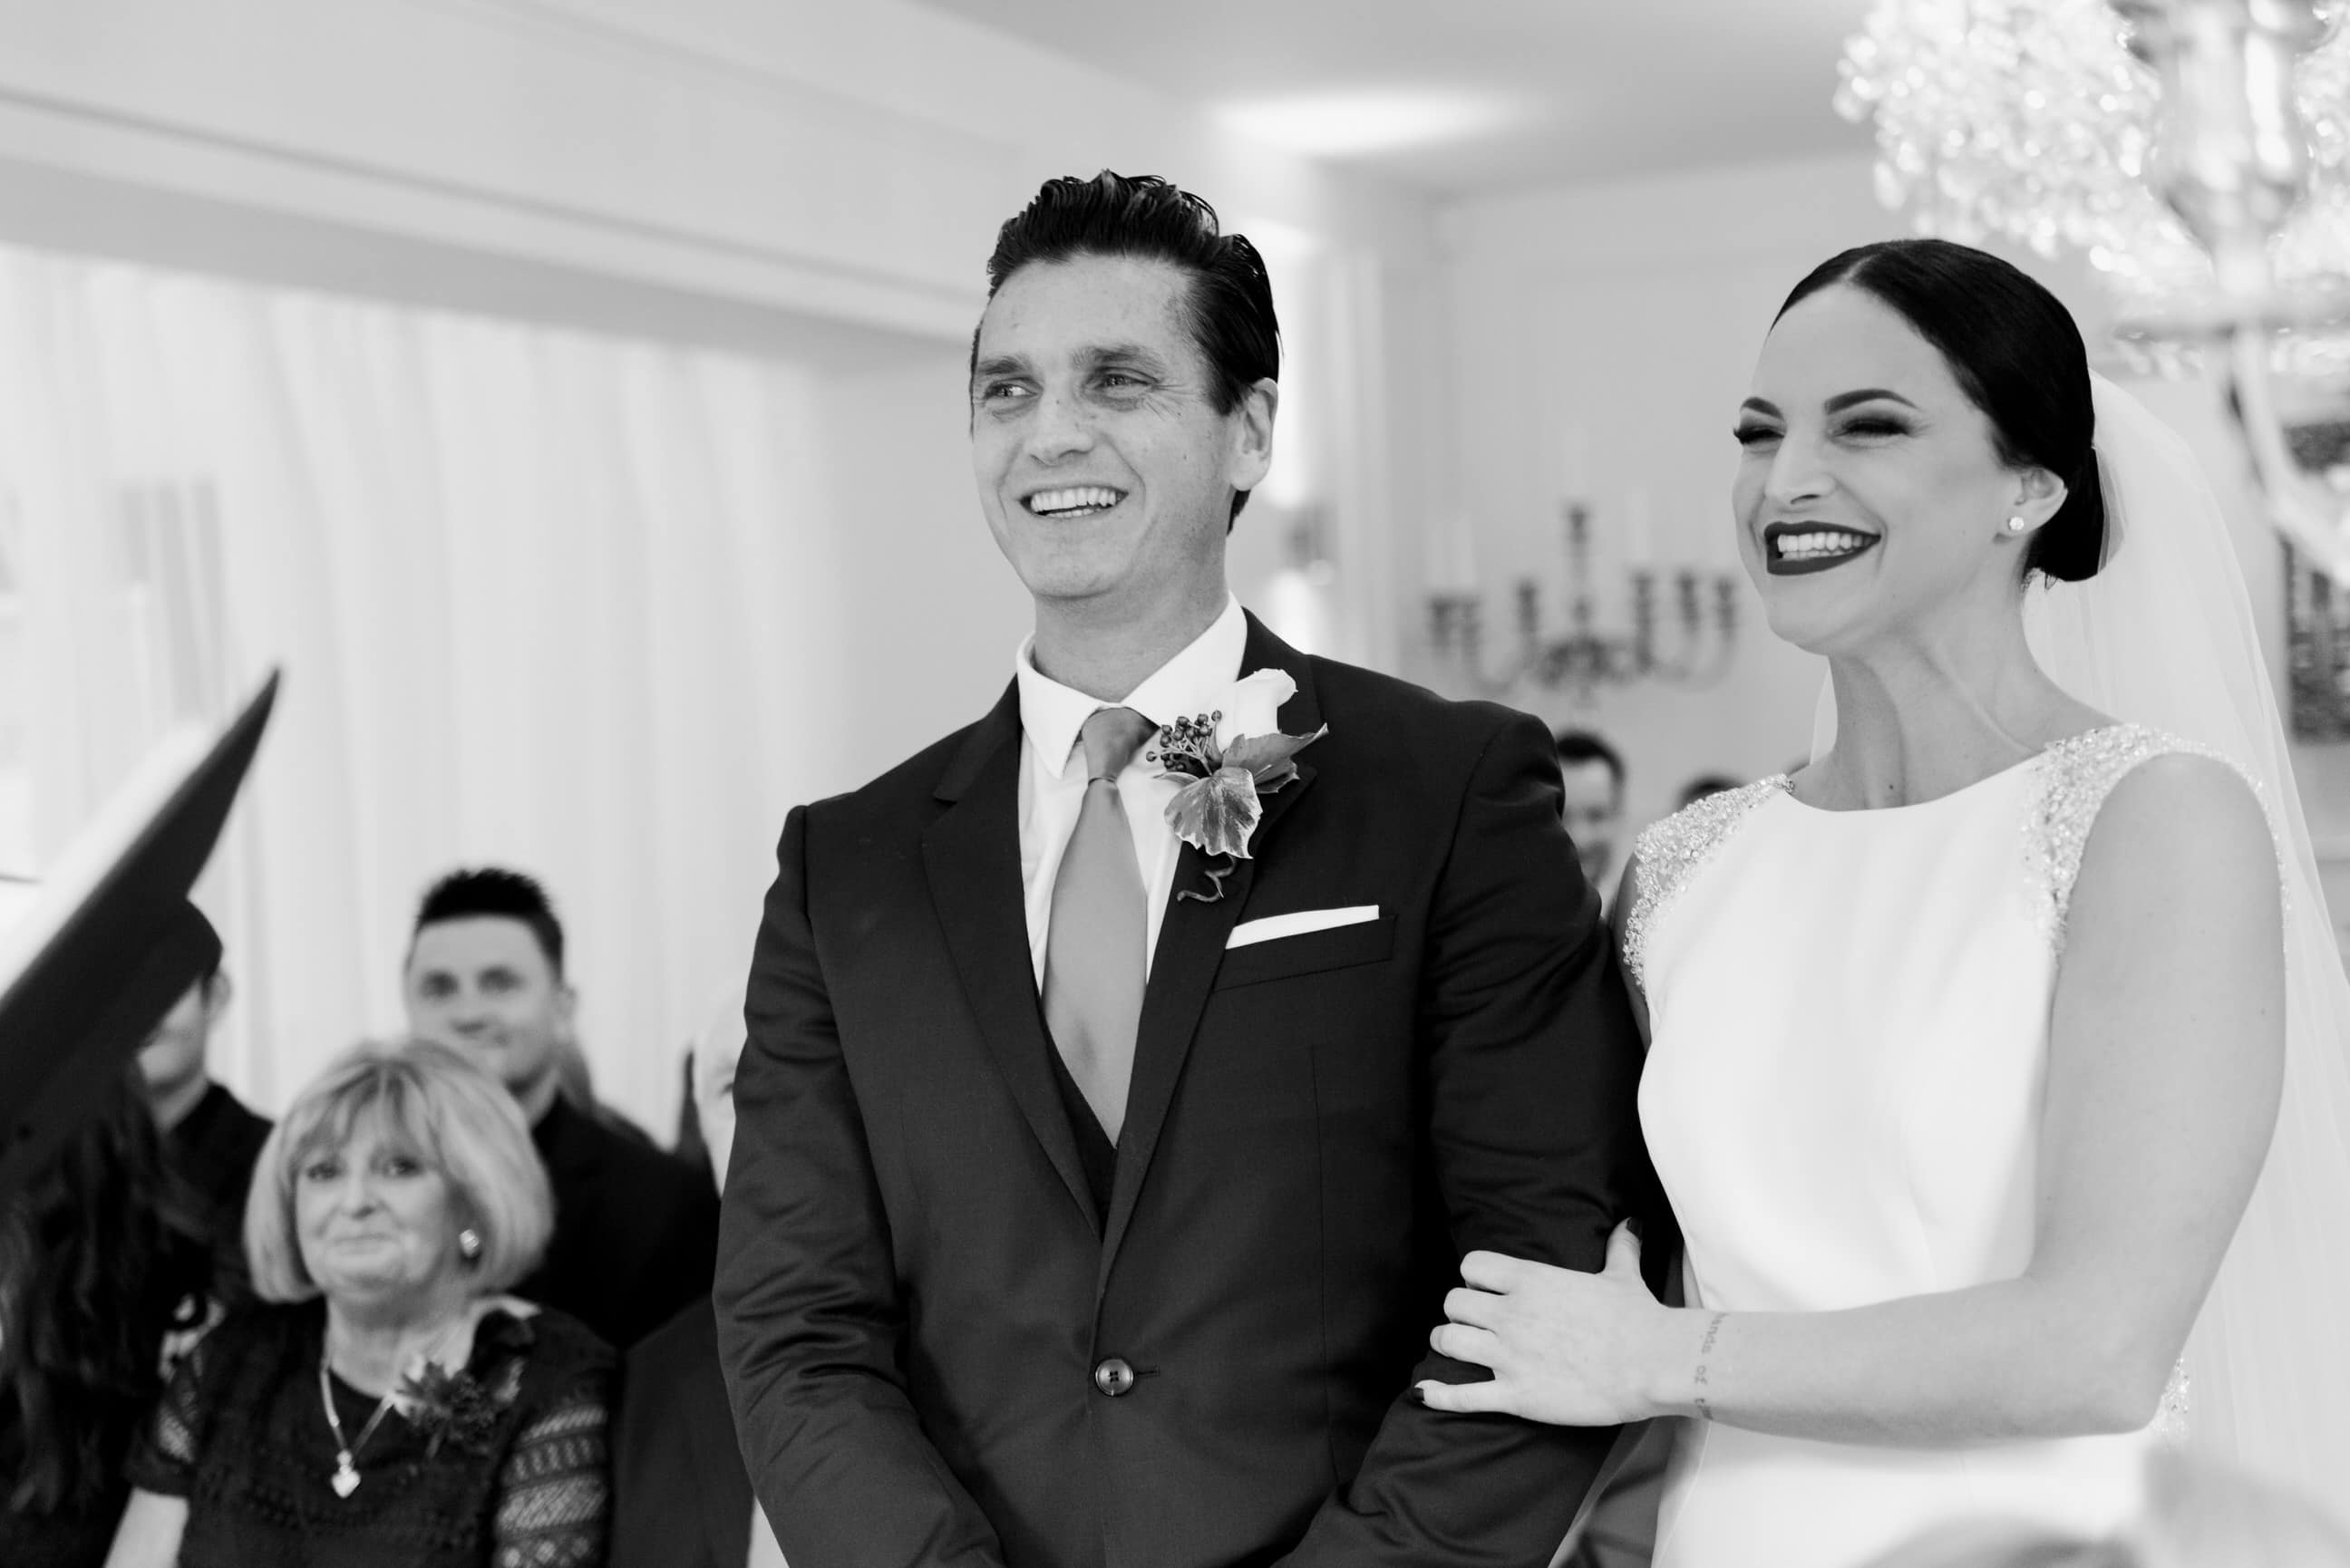 Bride and groom in ceremony, smiling